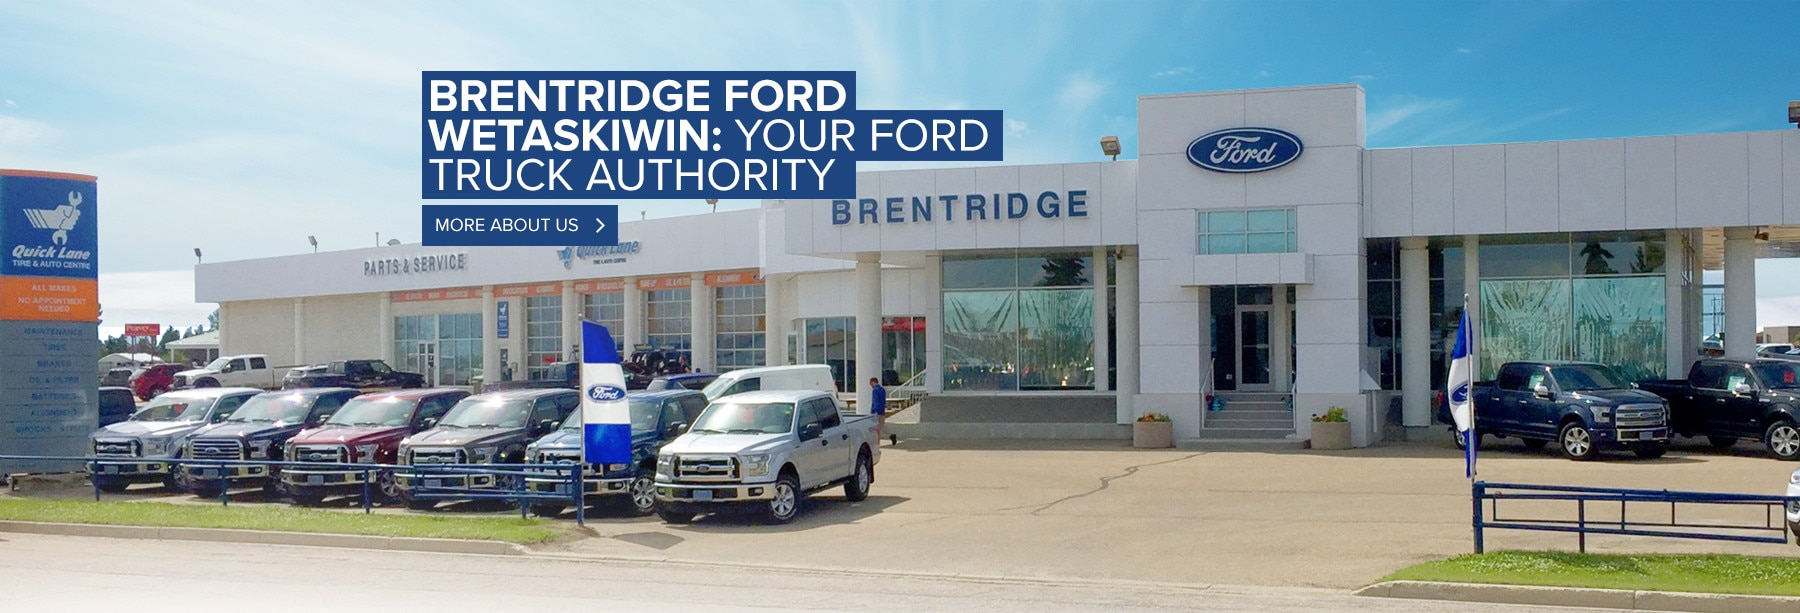 motors s uses football three largest seller and is new field employs of a parts conveyor belts motor people bigger article houston ford than russell dealership ar smith warehouse